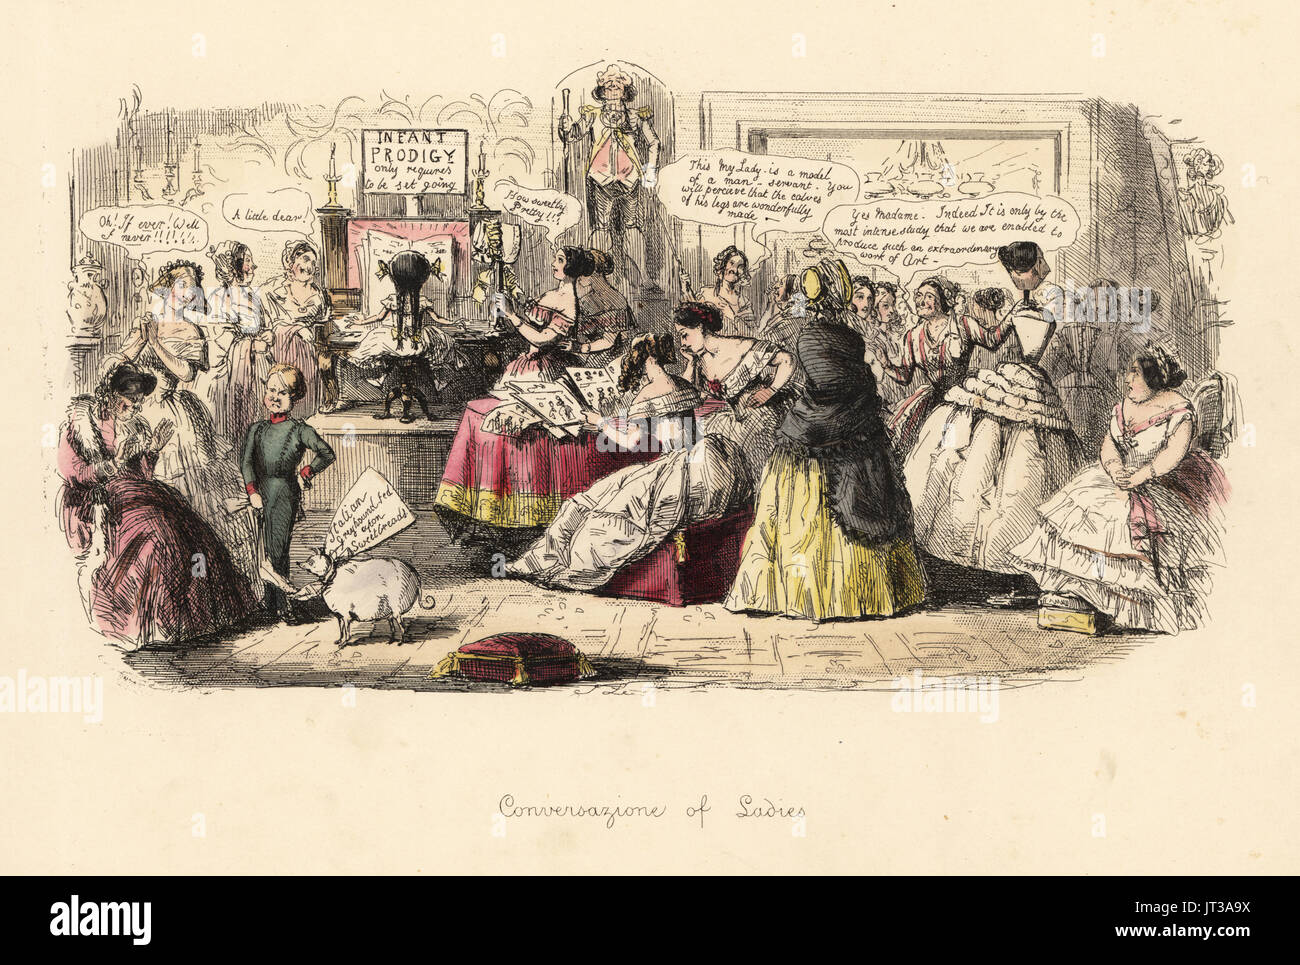 Conversavione of Ladies, 1848. Satirical print of ladies in a salon discussing fashion, children, dogs and man servants. Handcoloured etching by John Leech from Follies of the Year, from Punch's Pocket Books, Bradbury, London, 1864. - Stock Image